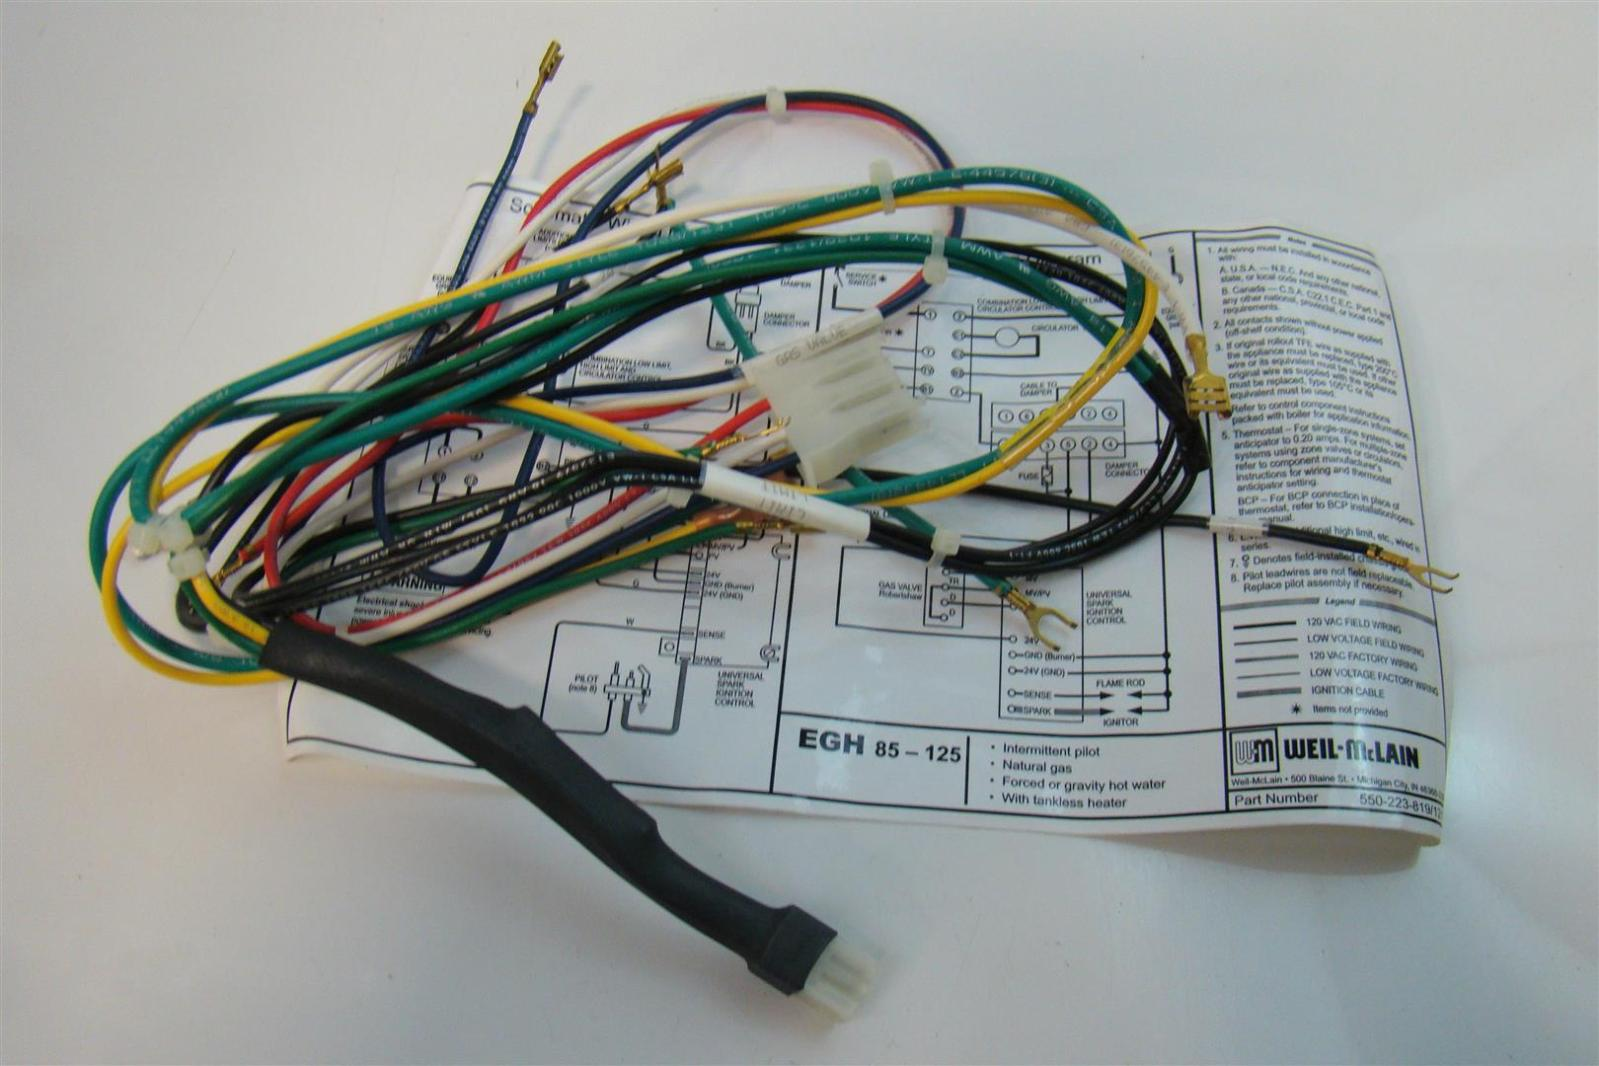 Weil Mclain Wiring Harness For Water Boilers W Tankless Heater Egh Boiler Schematic Diagram 85